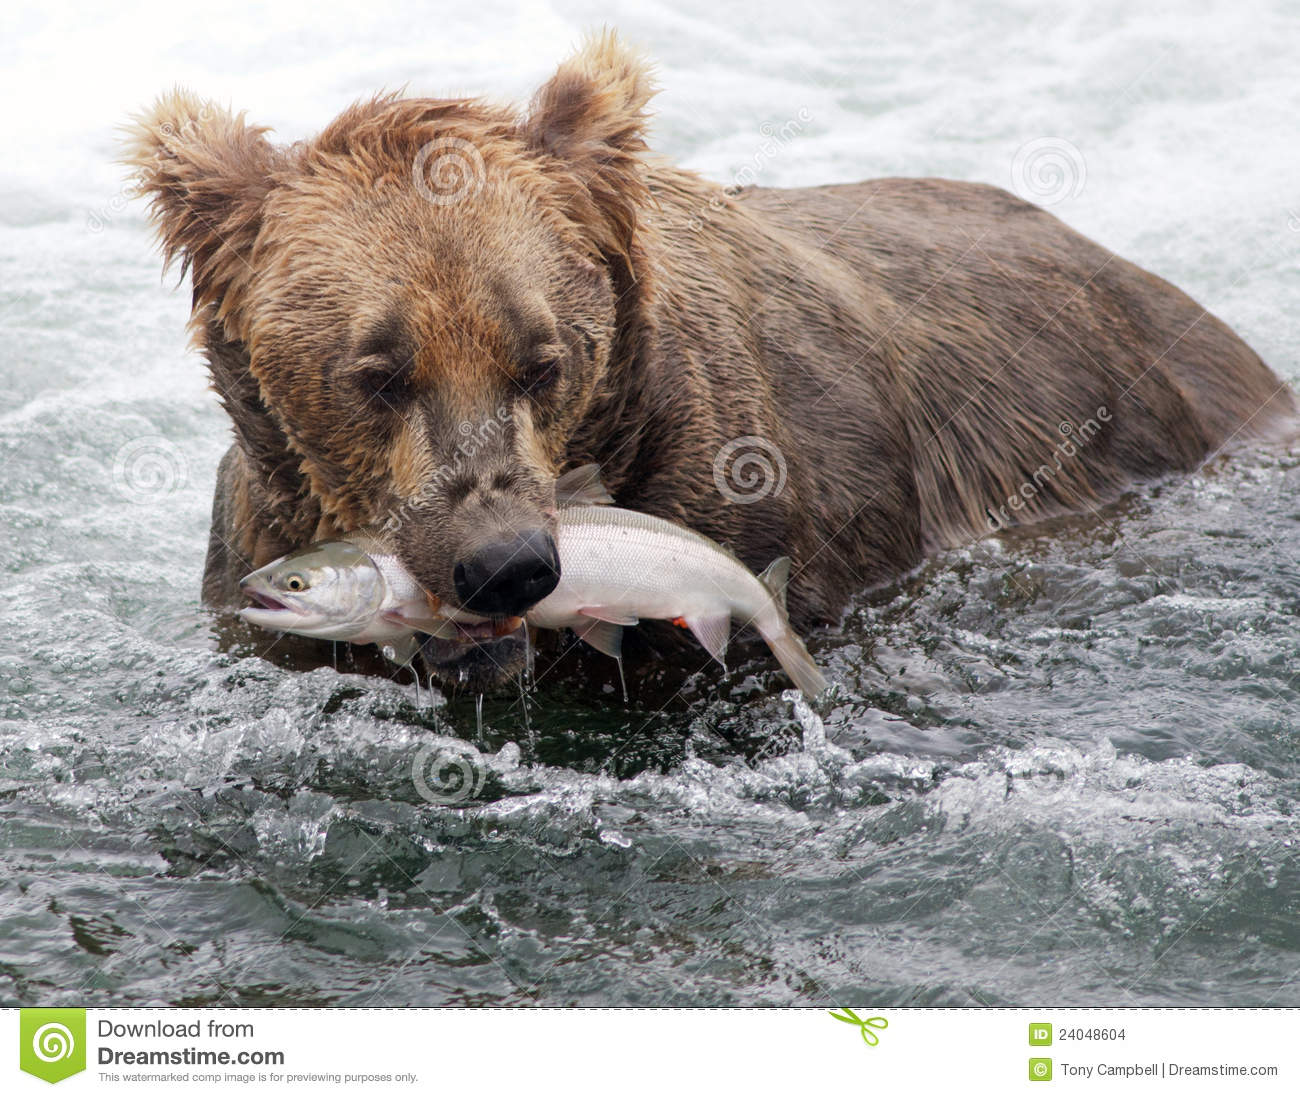 Alaskan Grizzly Bear Salmon